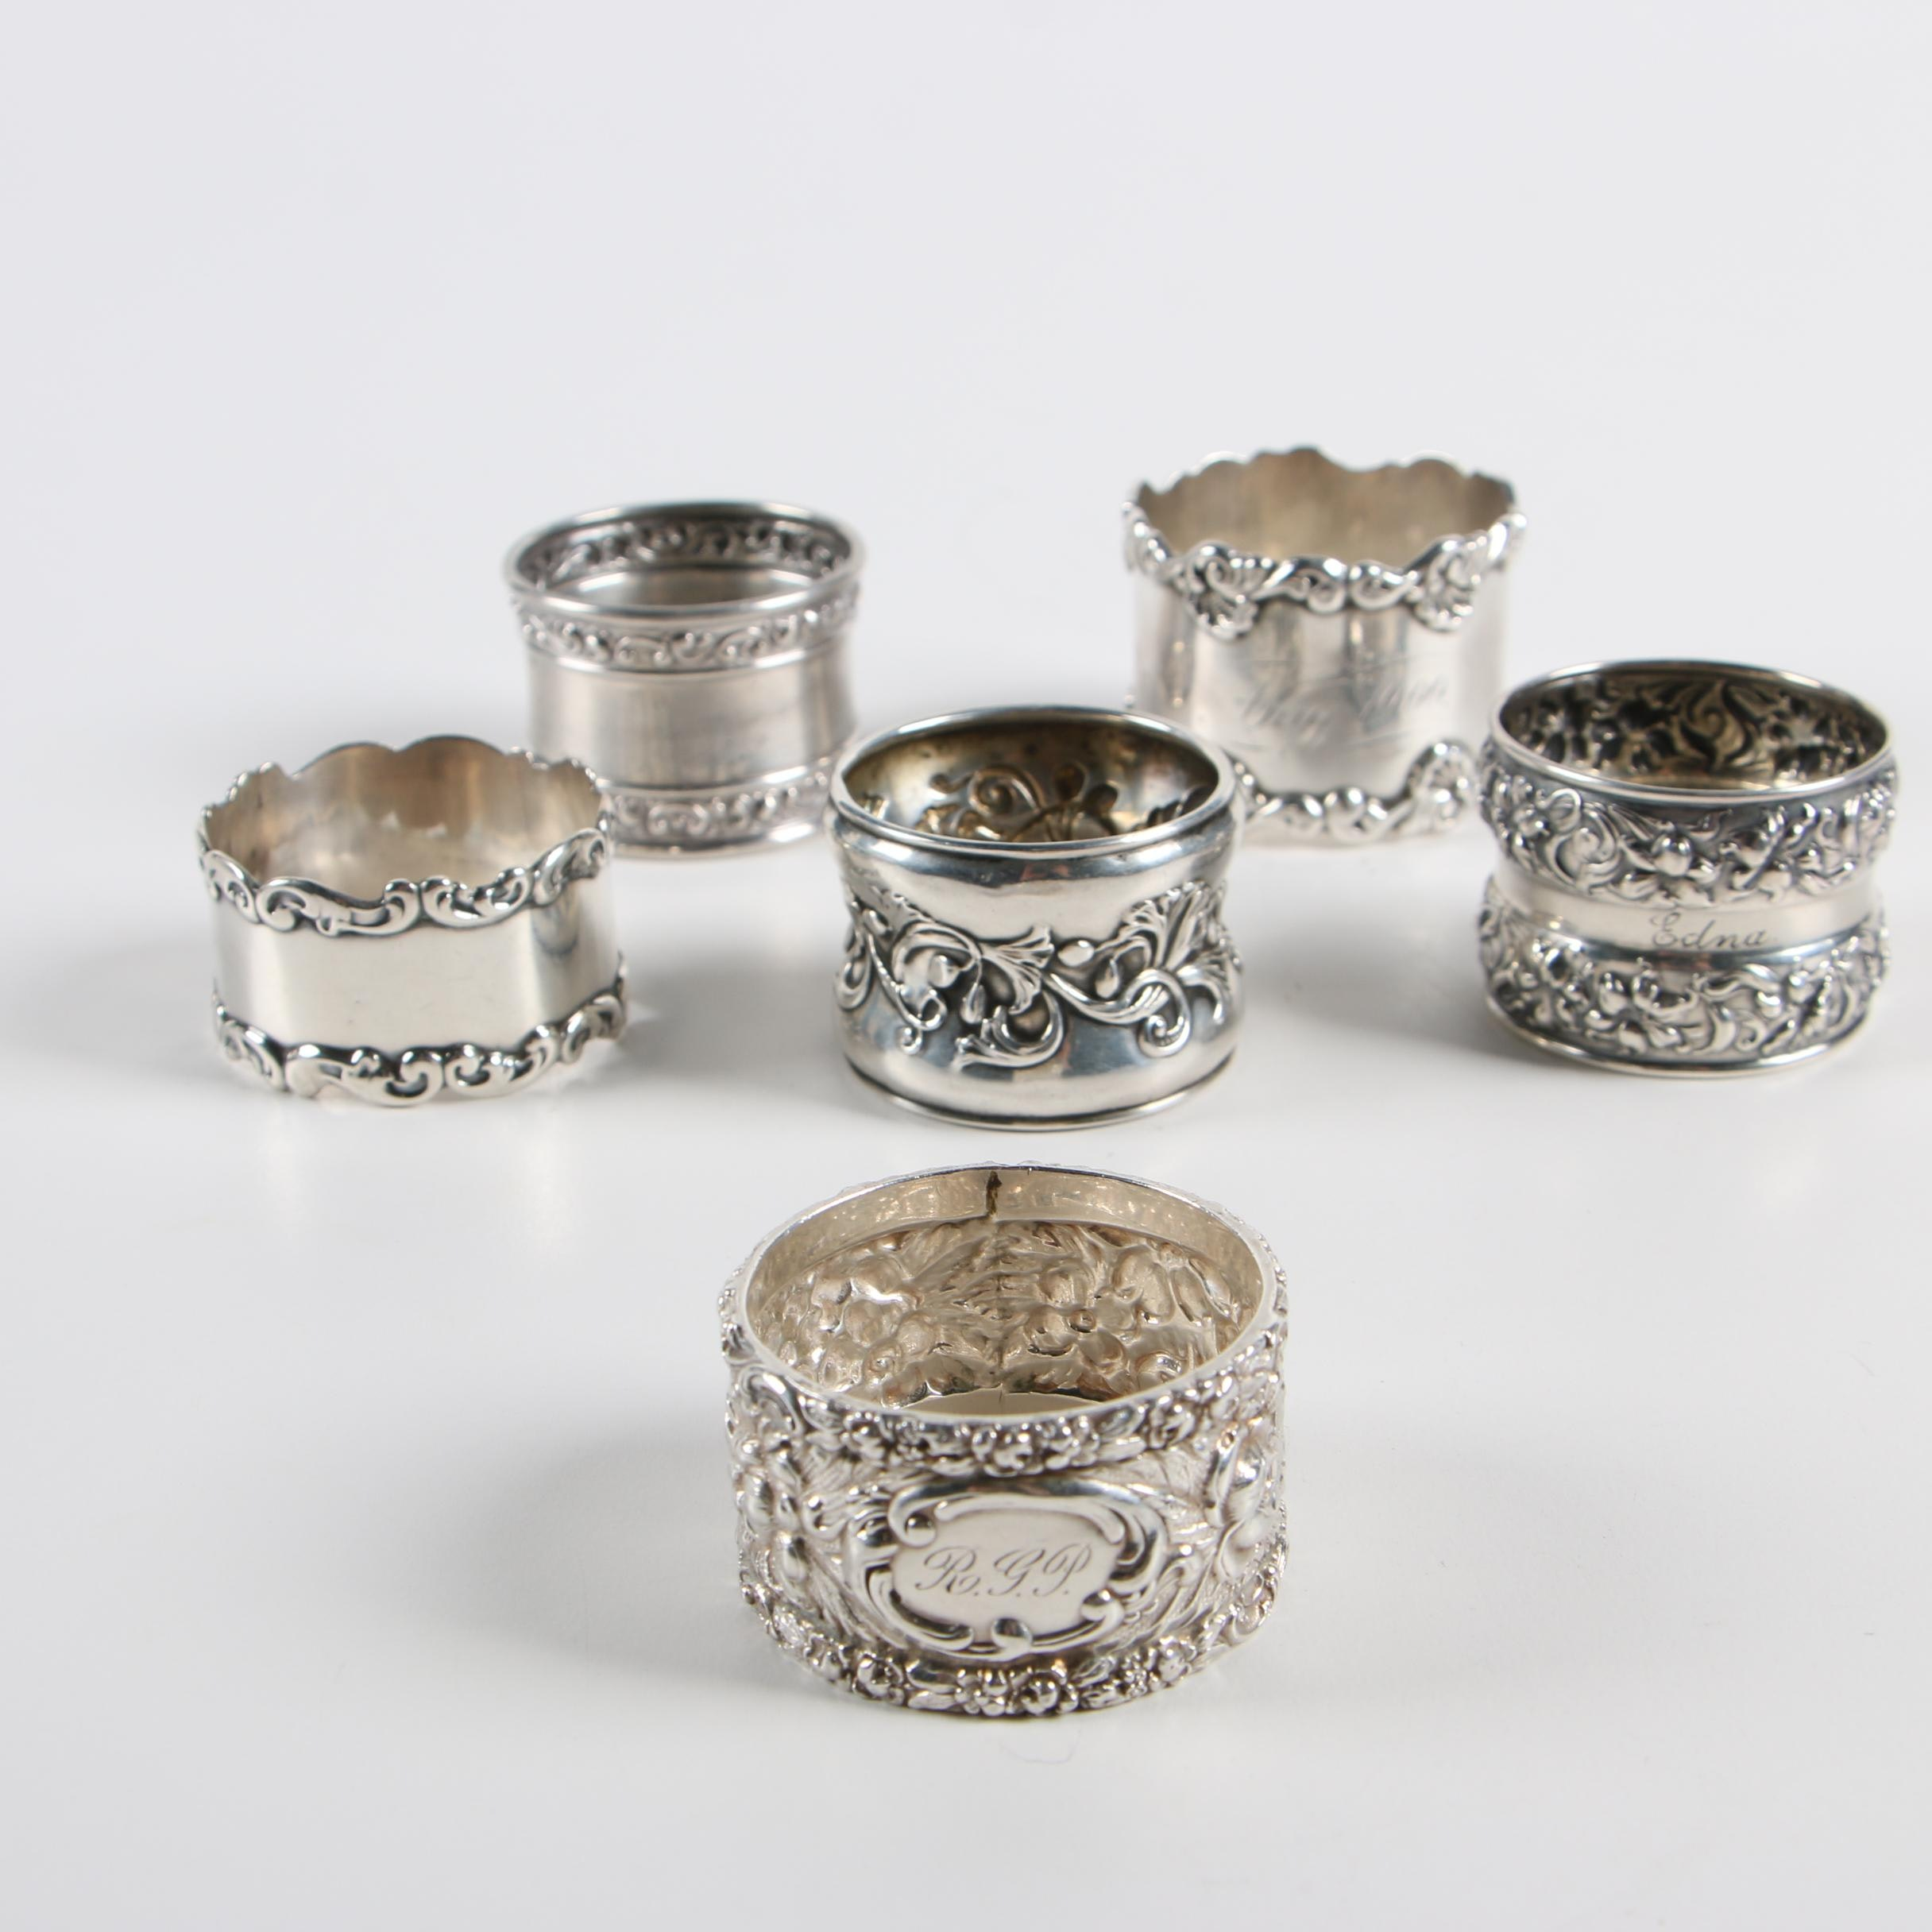 Sterling Silver Napkin Rings including Gorham and Towle